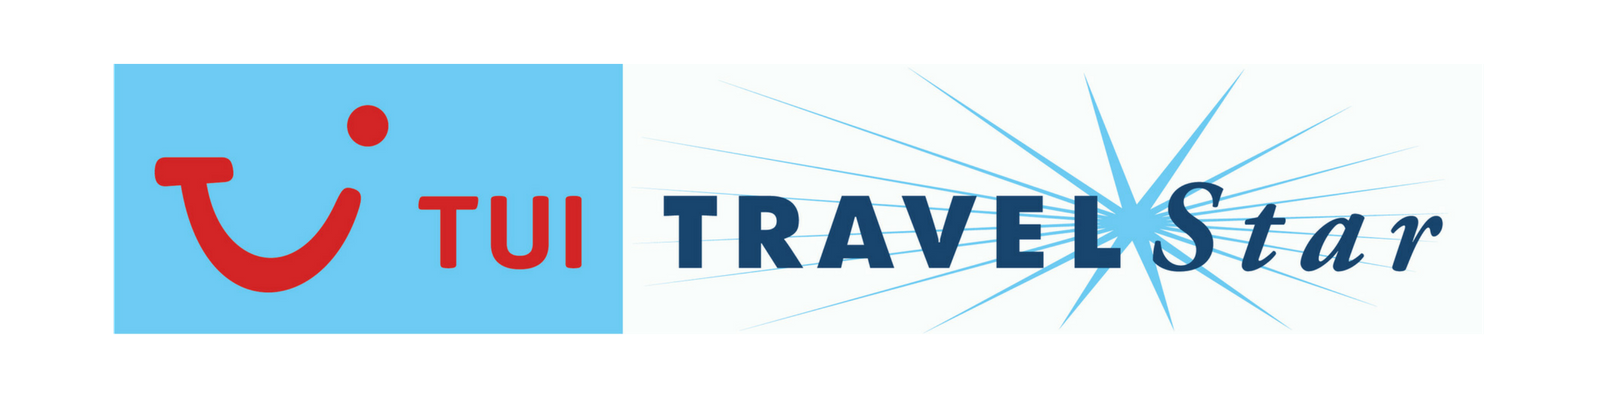 TUI-Travel-Star-logo.png